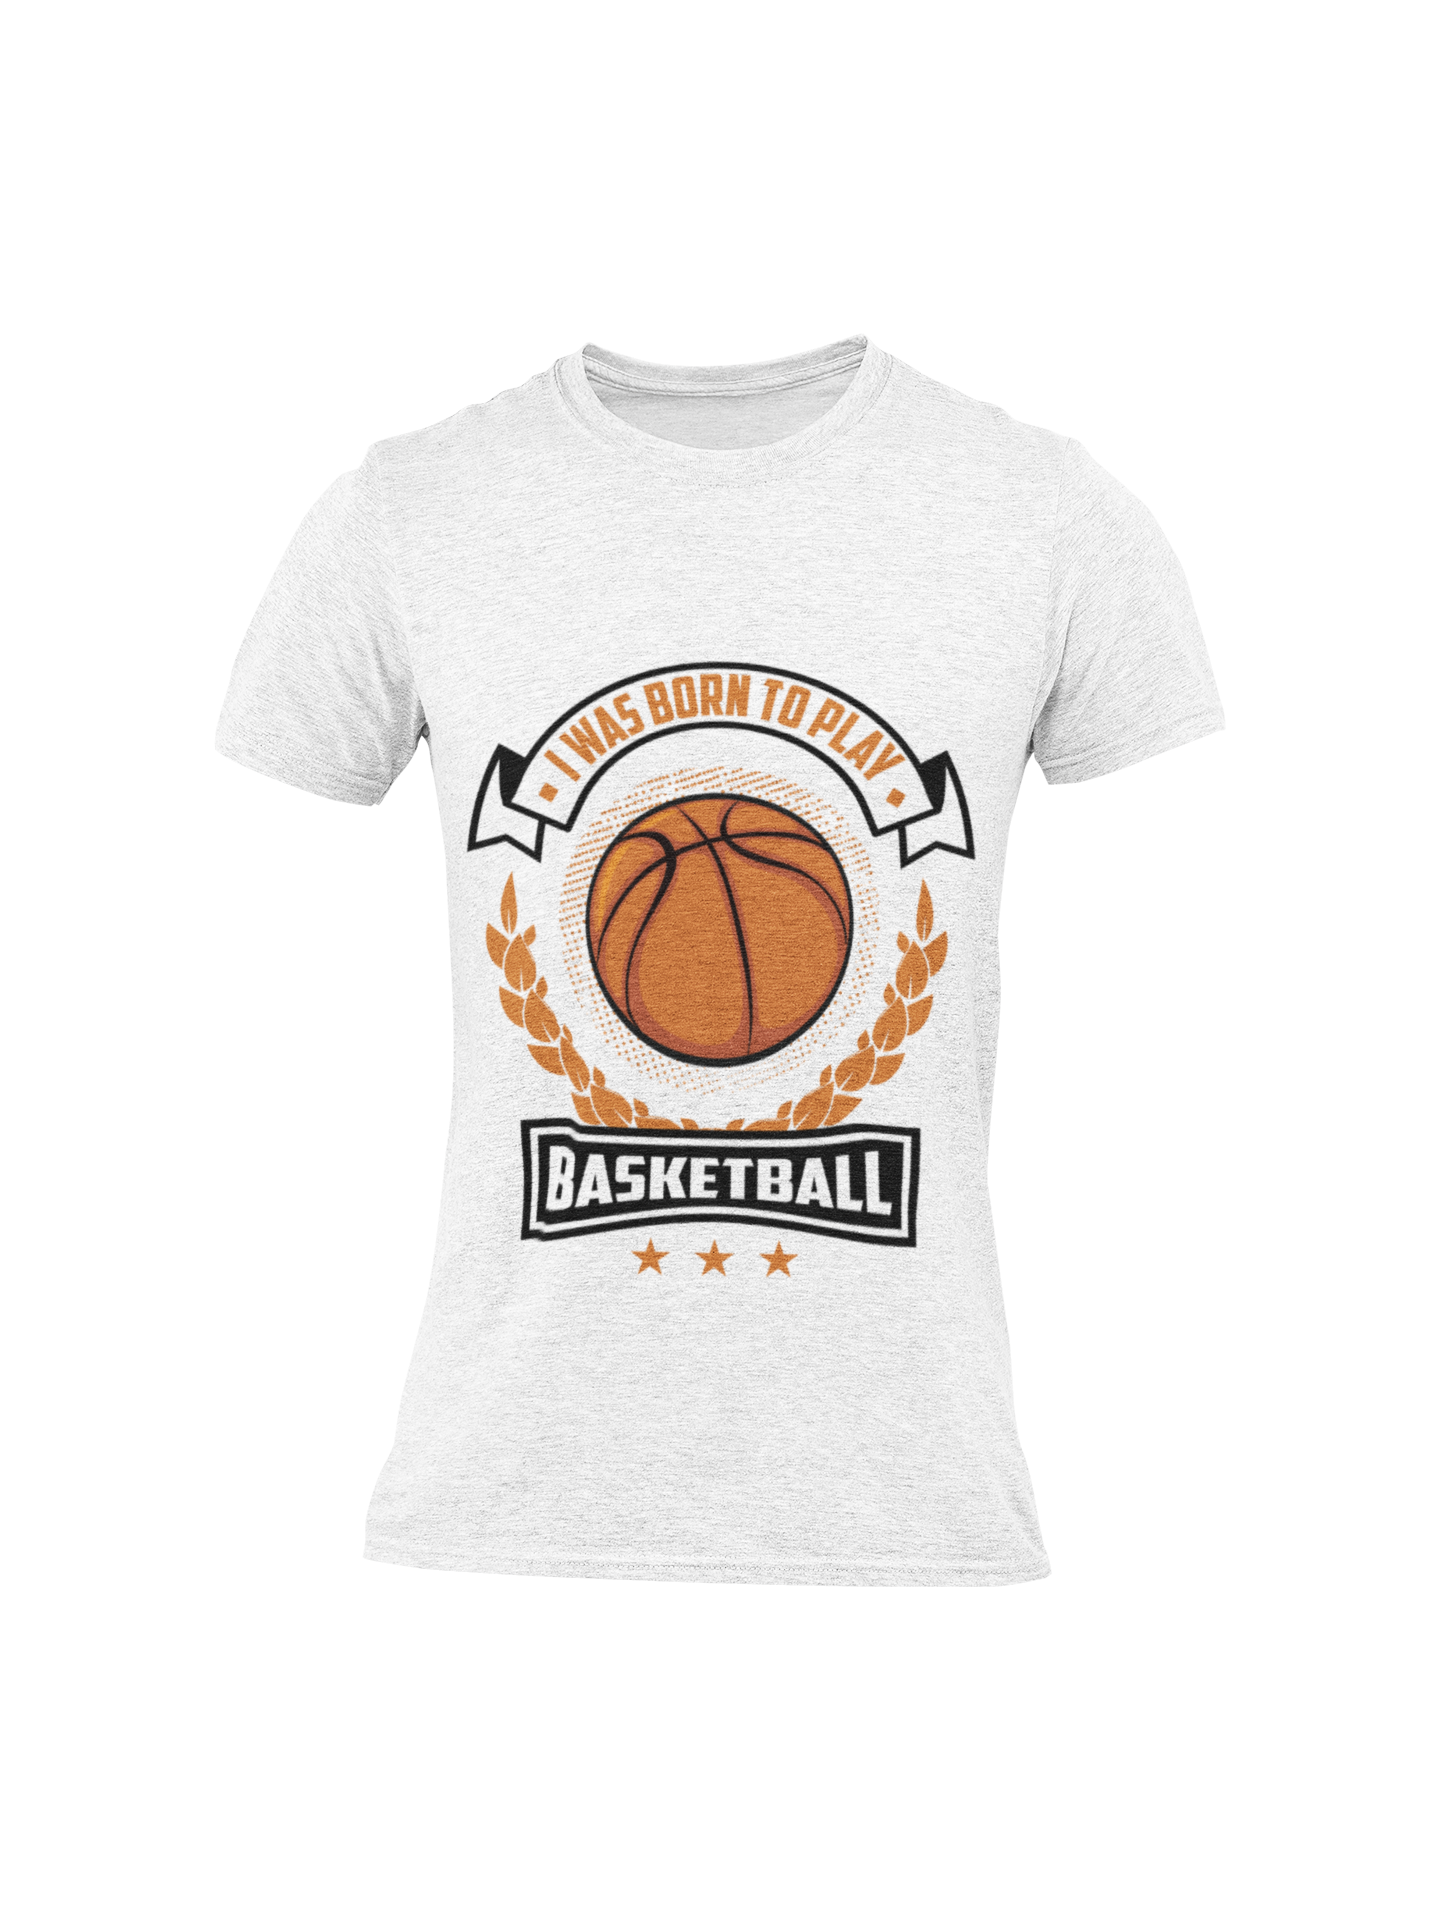 Short-Sleeve Born To Play Basketball T-Shirt - ItsASportsVibe